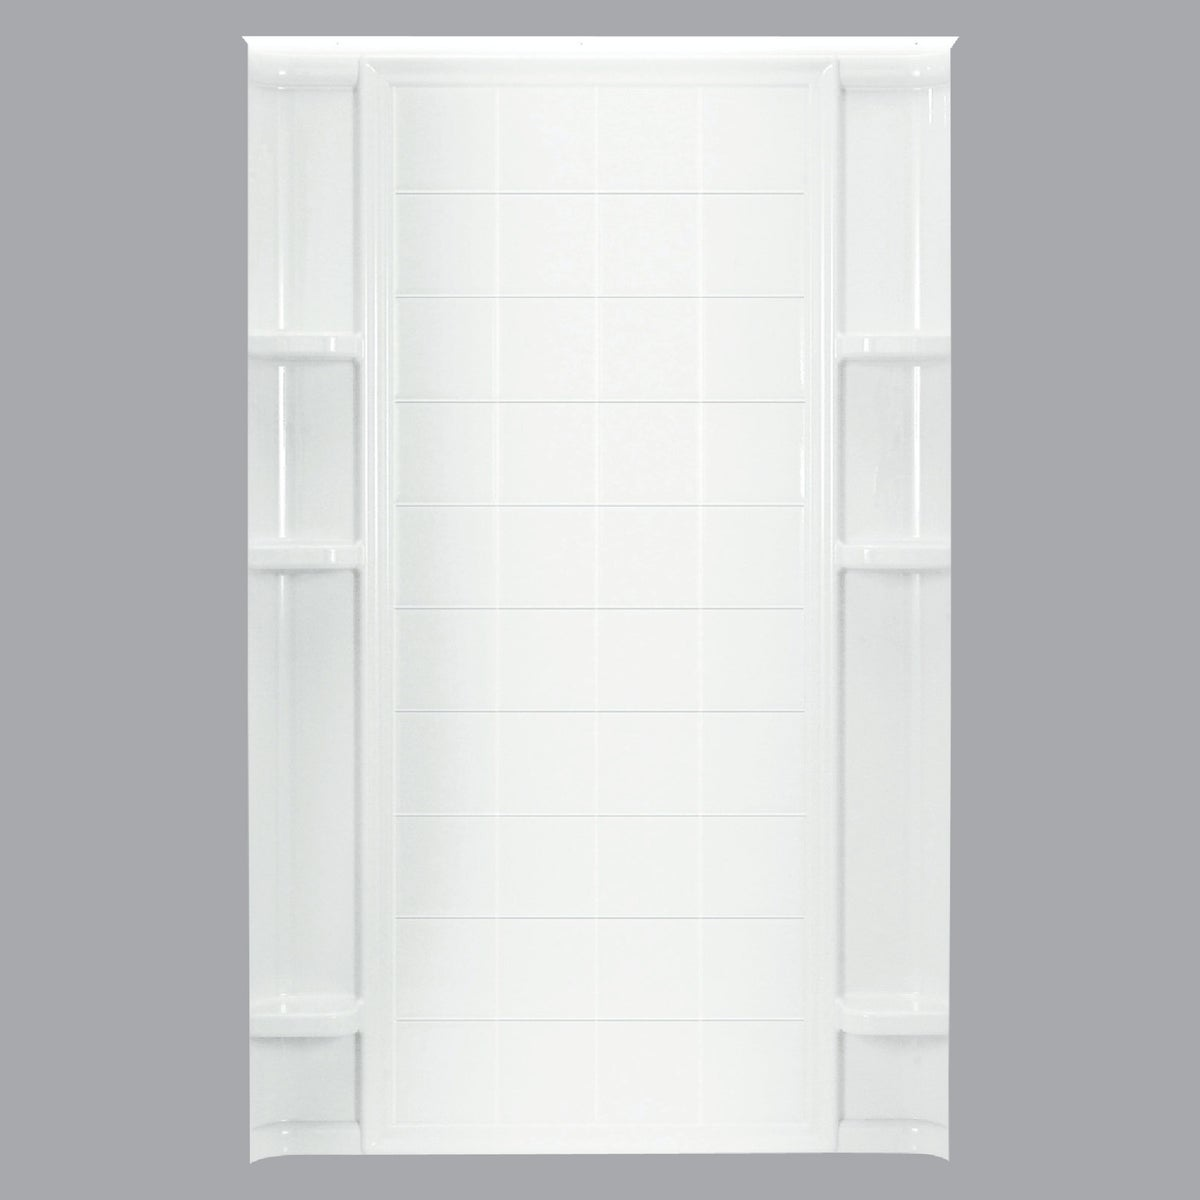 "48"" WHITE TILE BACKWALL - 72122100-0 by Sterling Pbg/vikrell"